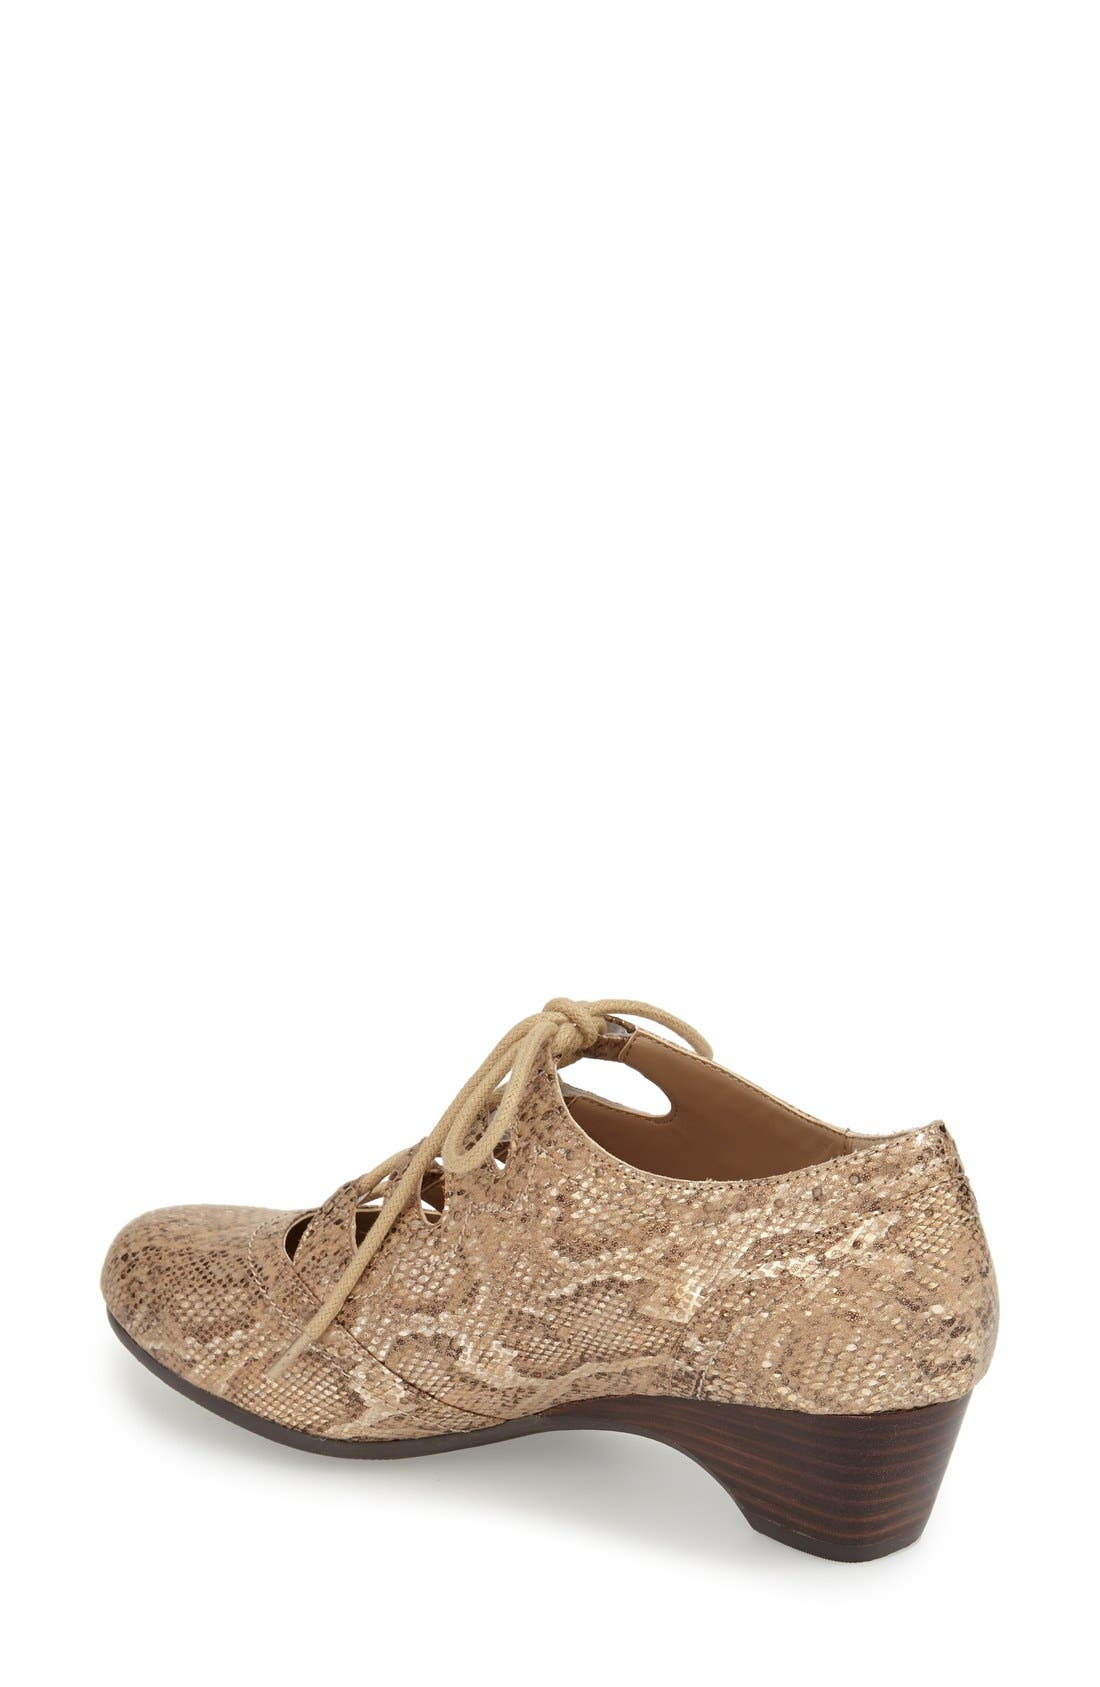 Posie Ghillie Oxford,                             Alternate thumbnail 2, color,                             CHAMPAGNE METALLIC SNAKE